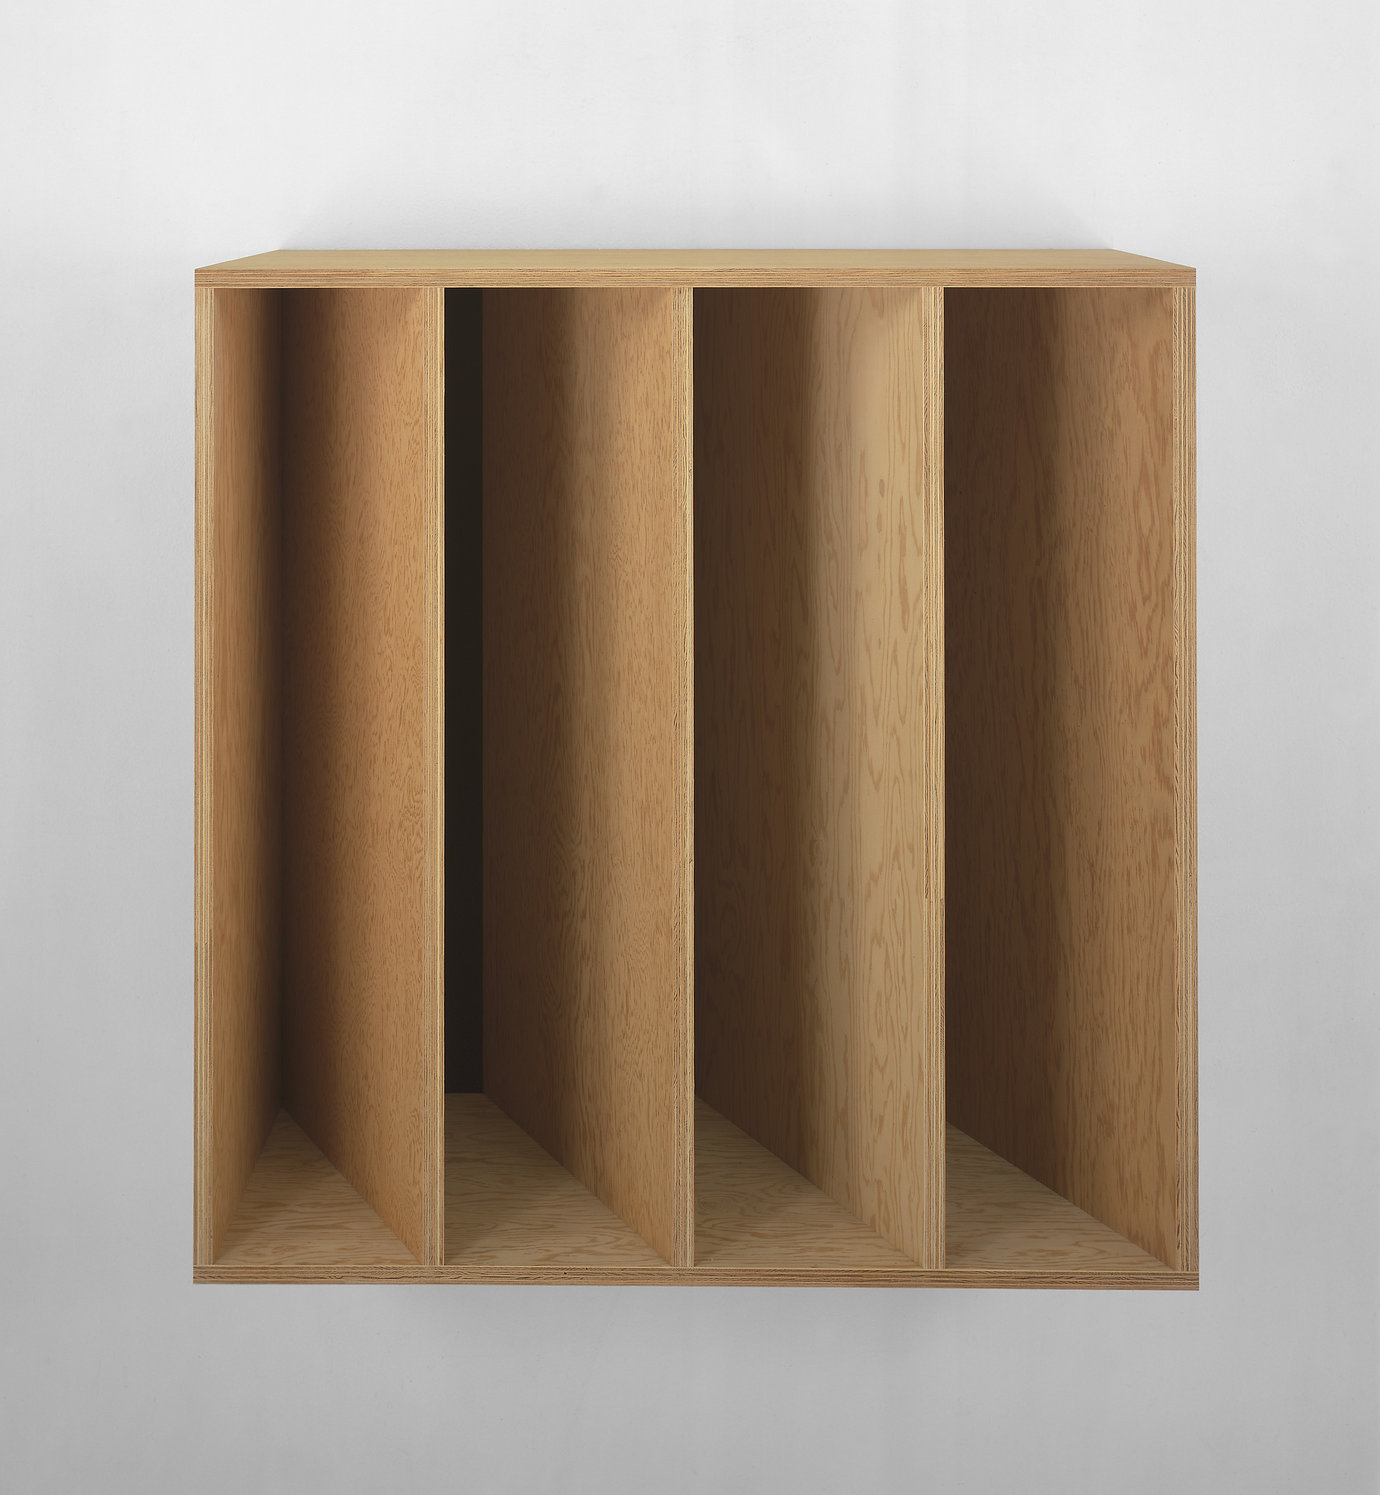 ", 1989. Douglas Fir plywood with brown Plexiglas, 39-3/8"" x 39-3/8"" x 19-5/8"" (100 cm x 100 cm x 50 cm)."